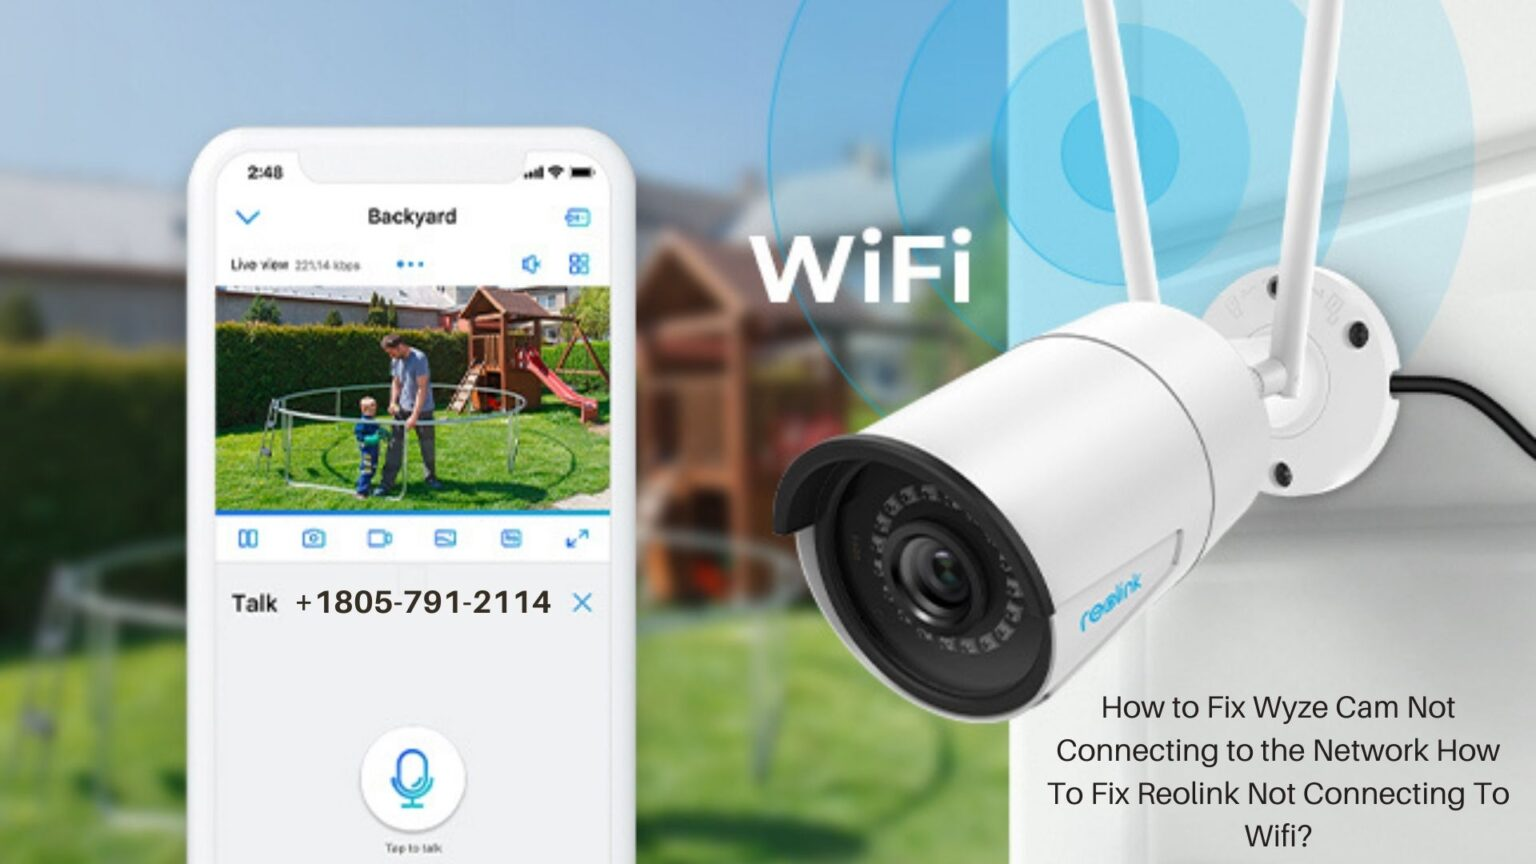 Reolink Not Connecting To Wifi